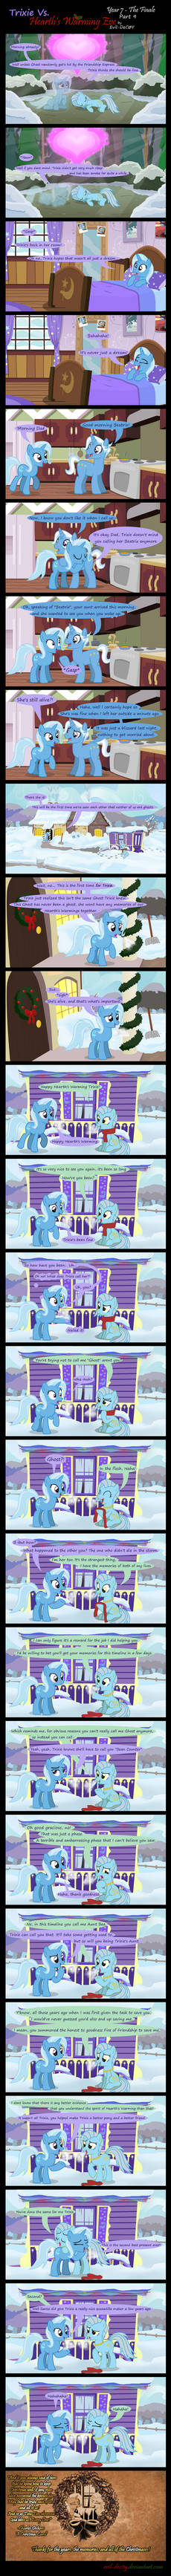 Trixie Vs. Hearth's Warming Eve: Finale (Part 9)